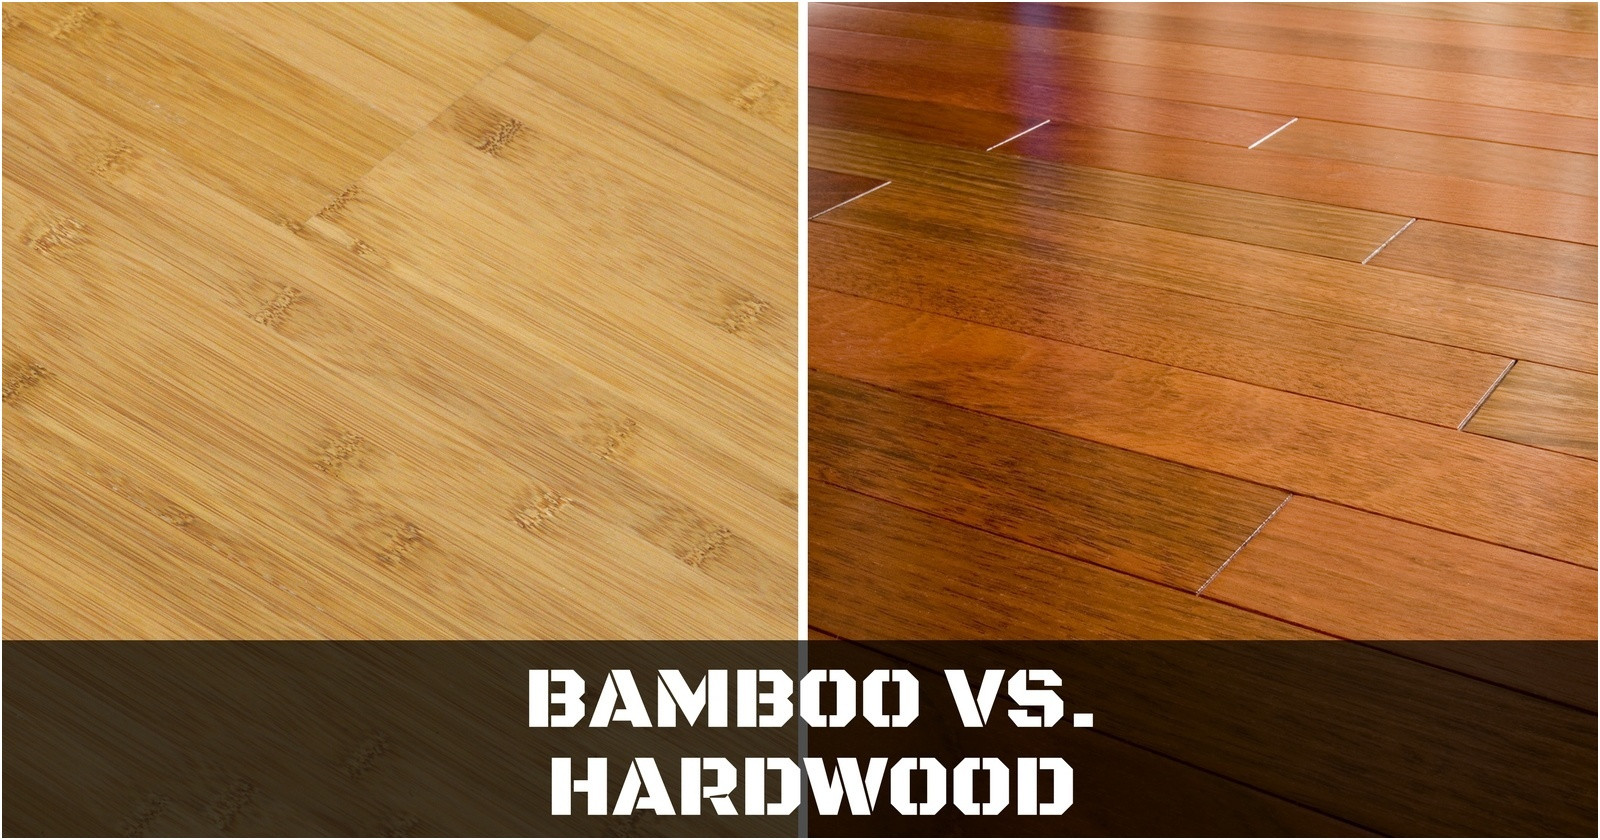 bamboo flooring vs hardwood price of strand bamboo flooring for sale photographies 1 2 x 5 antique for floor hardwood laminate brands prices for related post